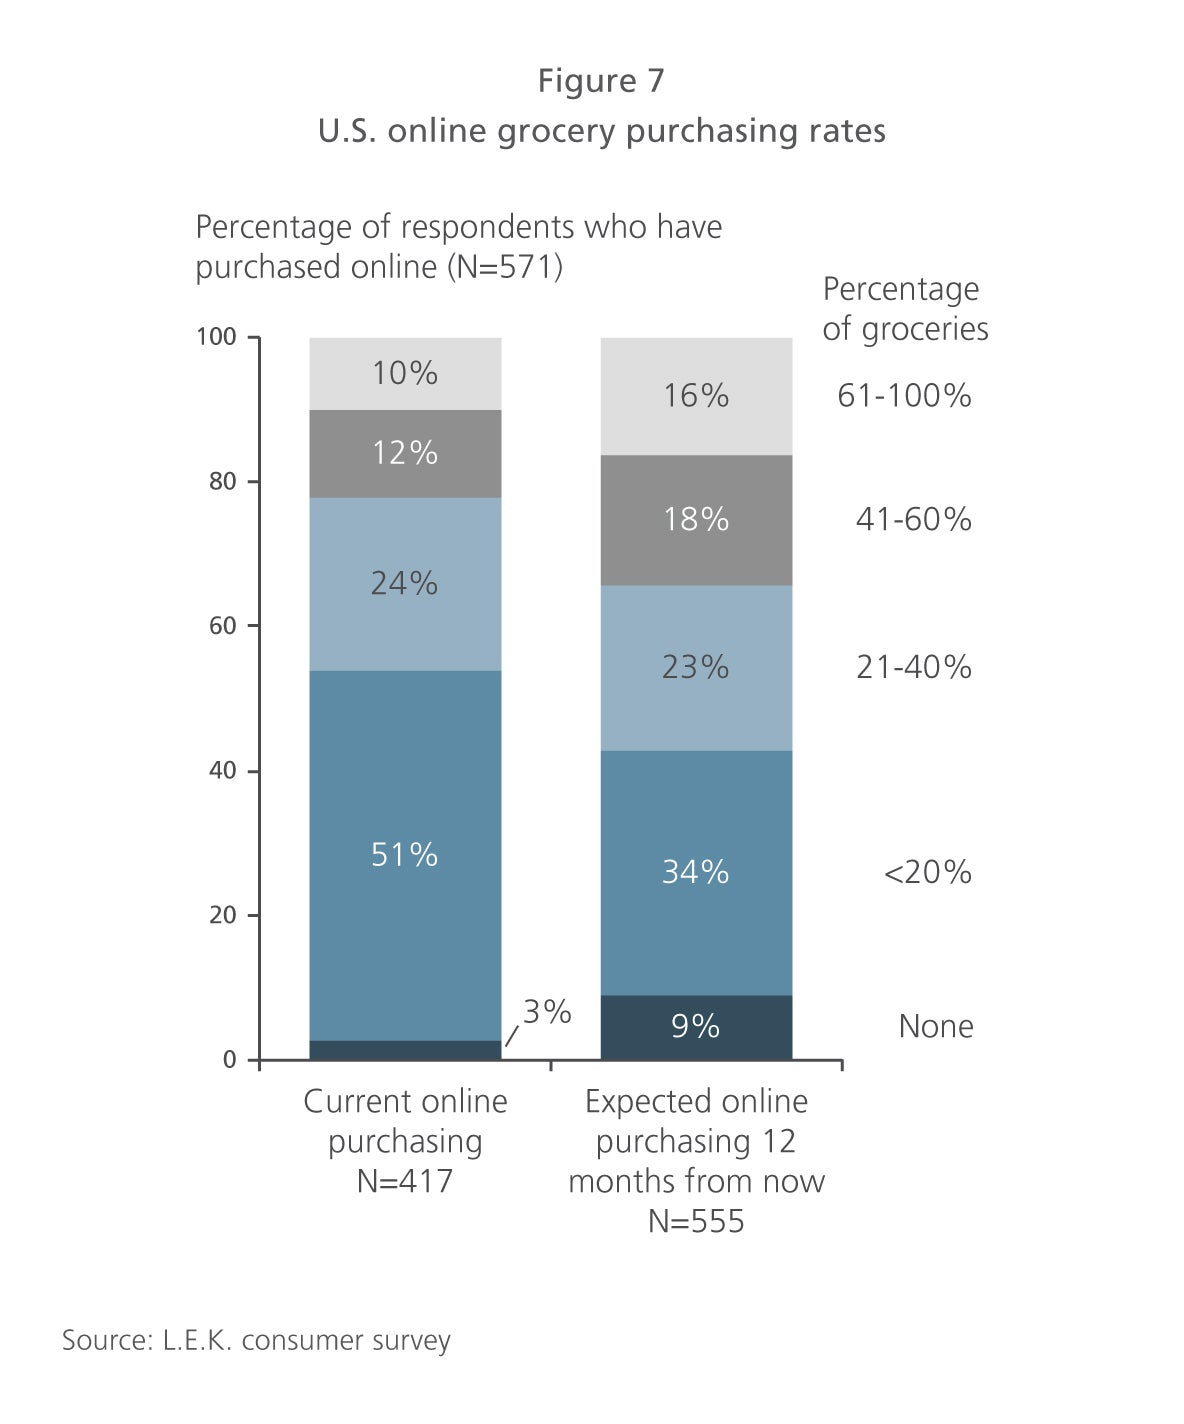 U.S. online grocery purchasing rates